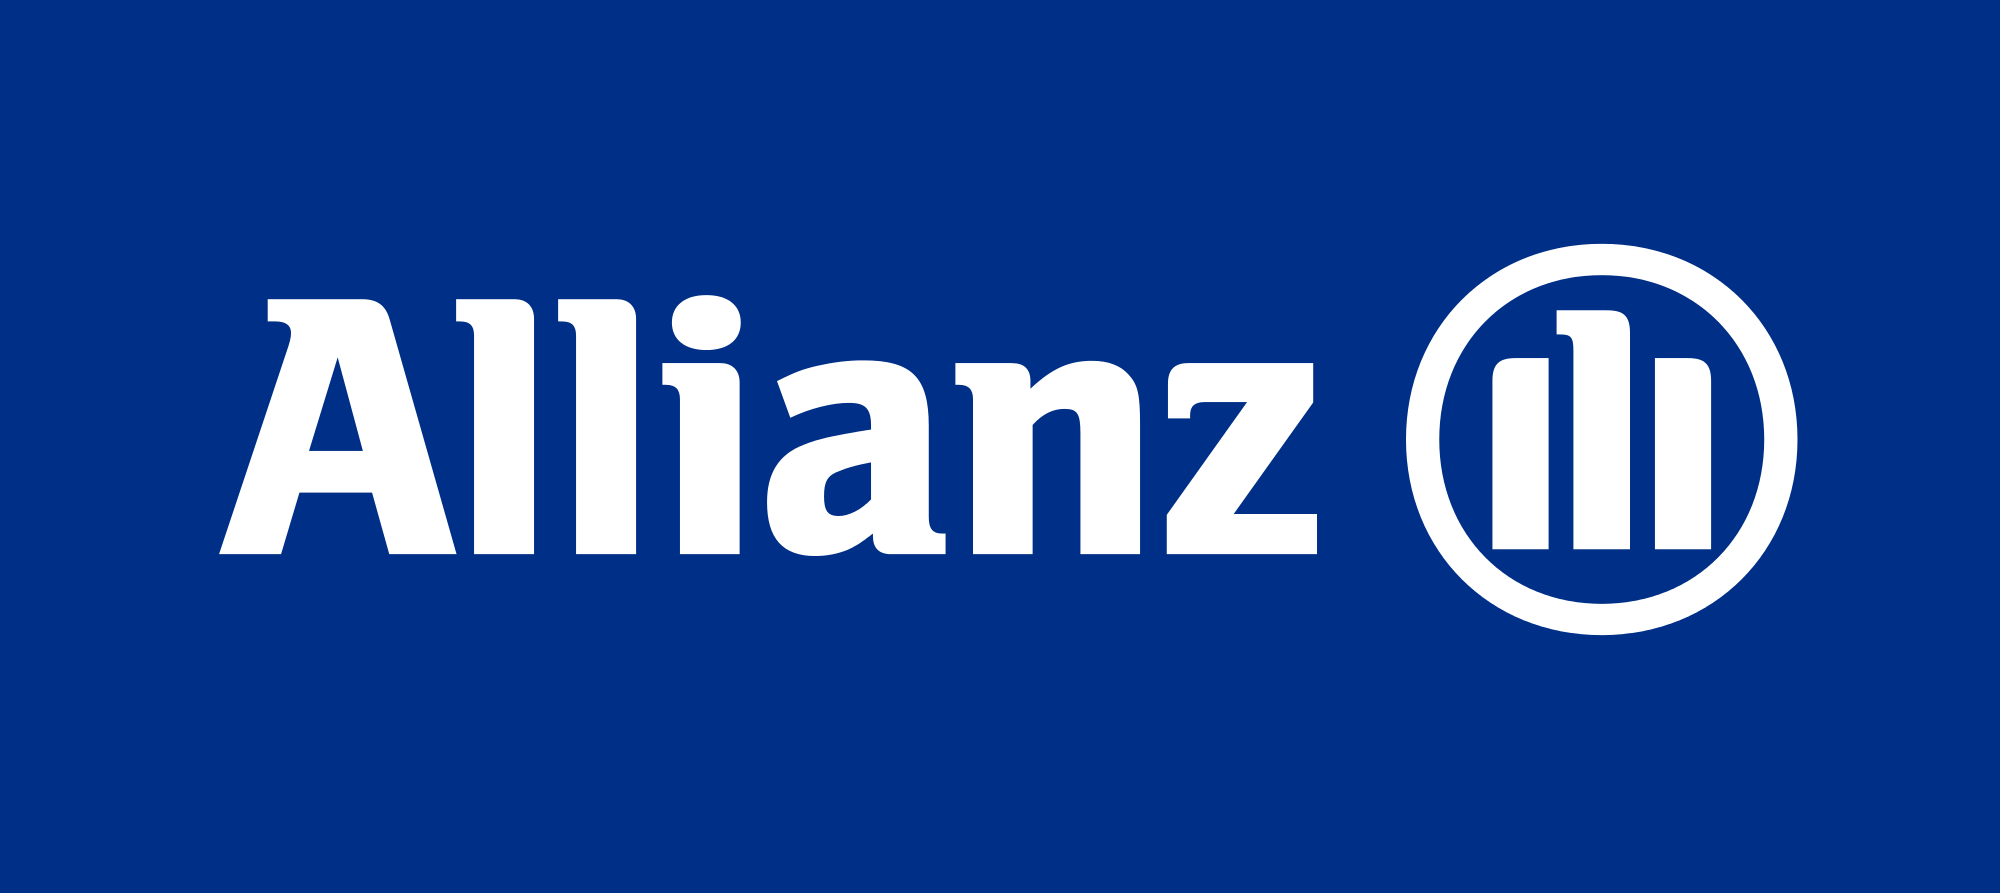 Allianz_logo.svg